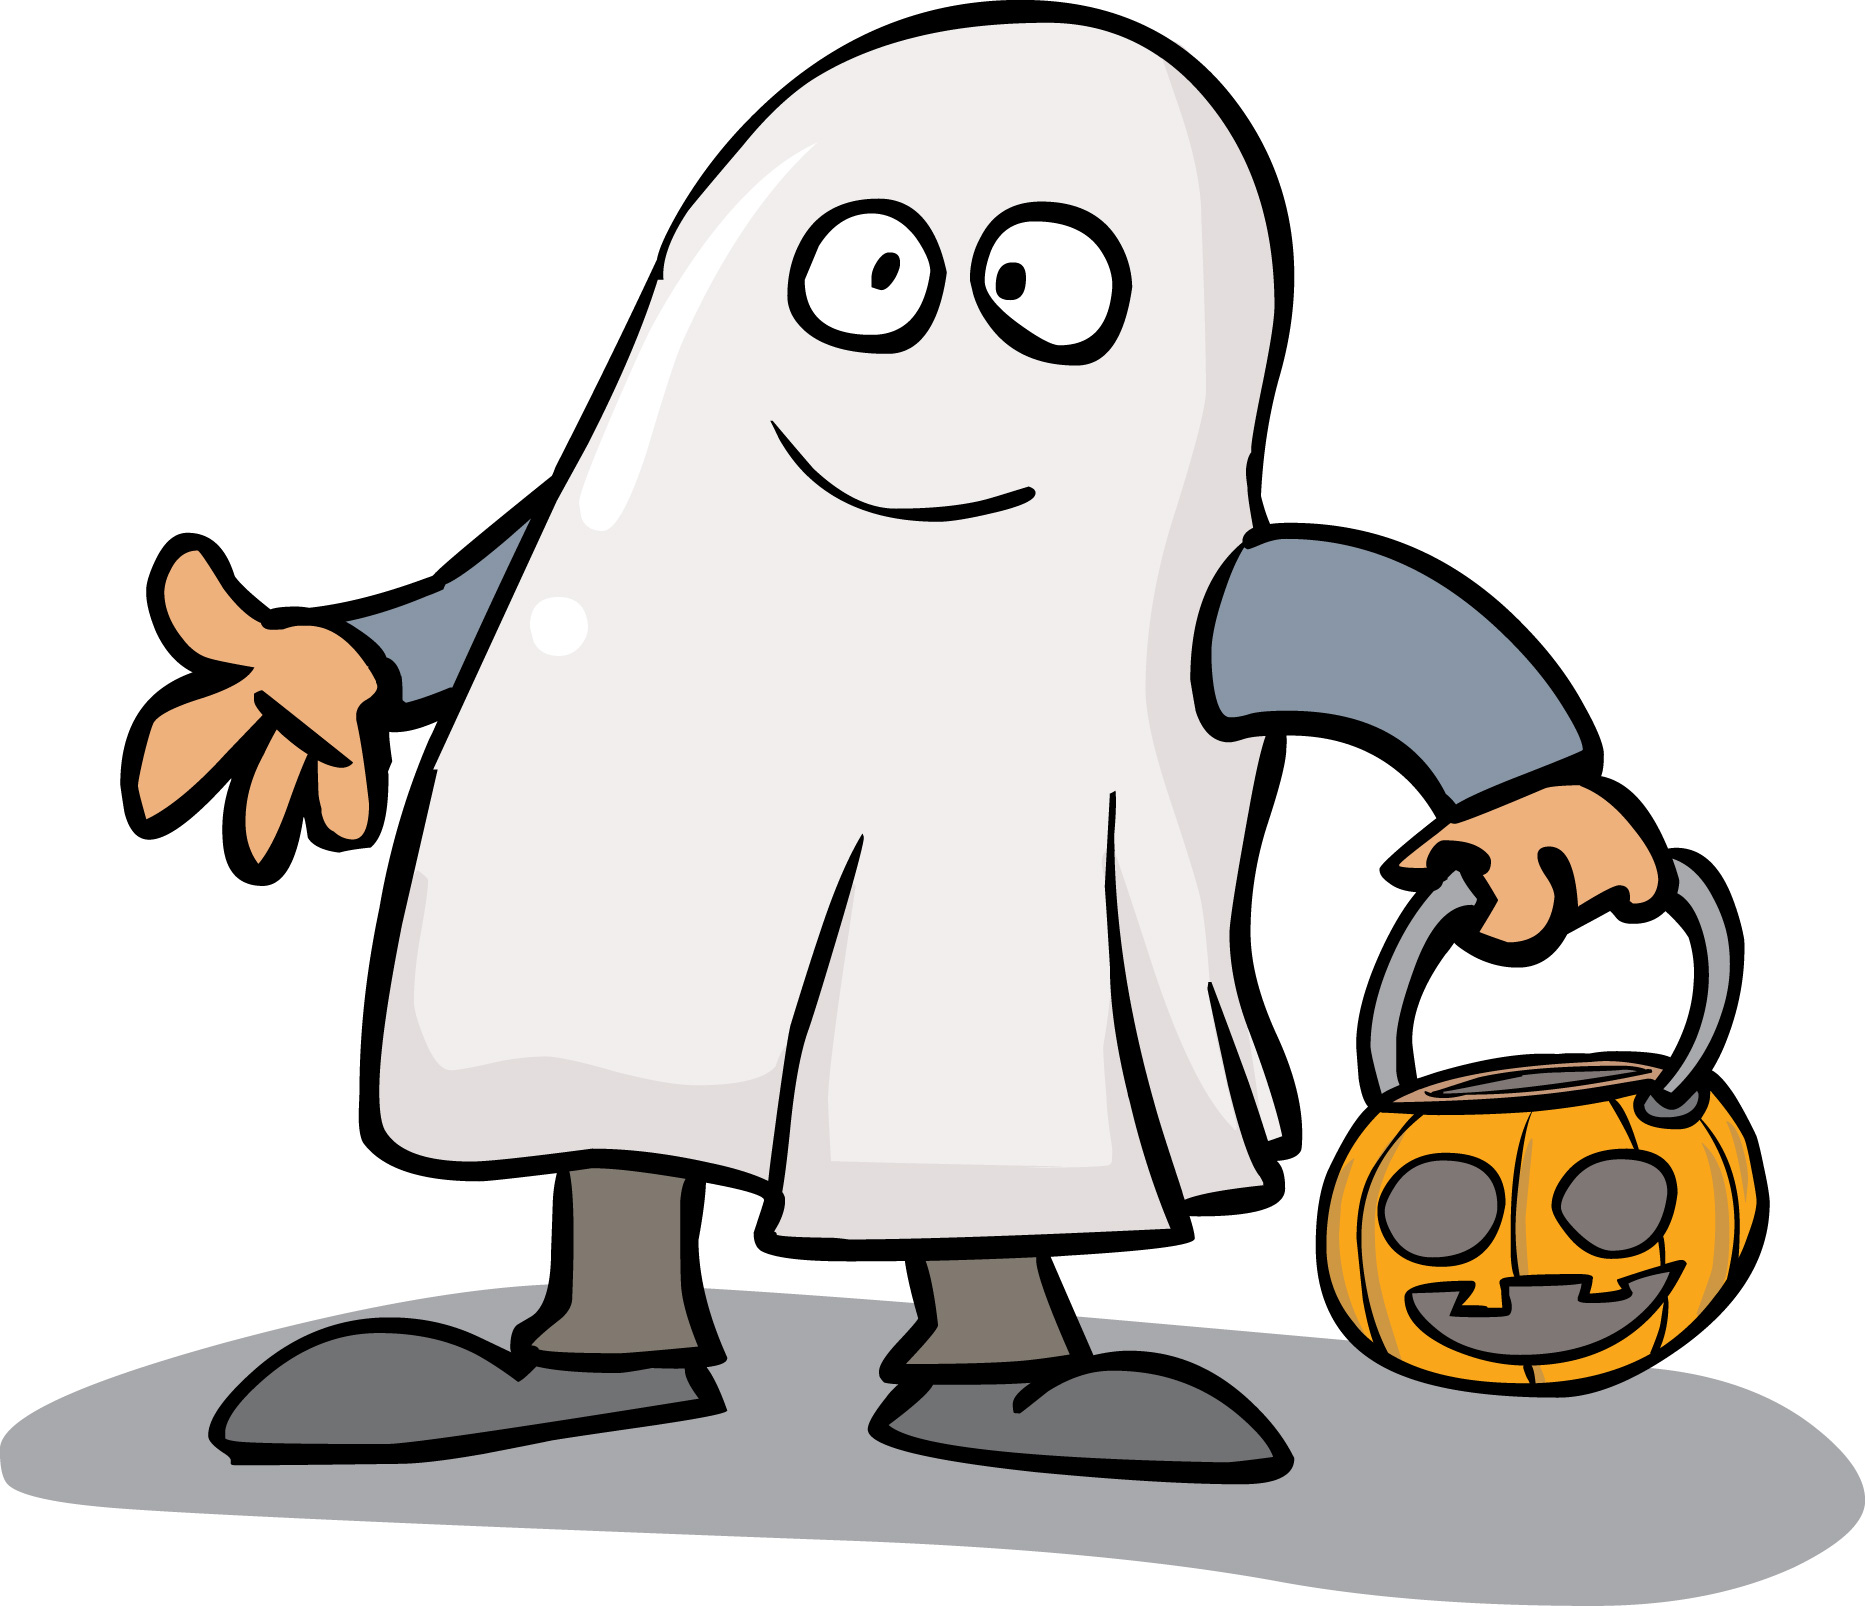 image black and white download Costume clipart. Free halloween costumes download